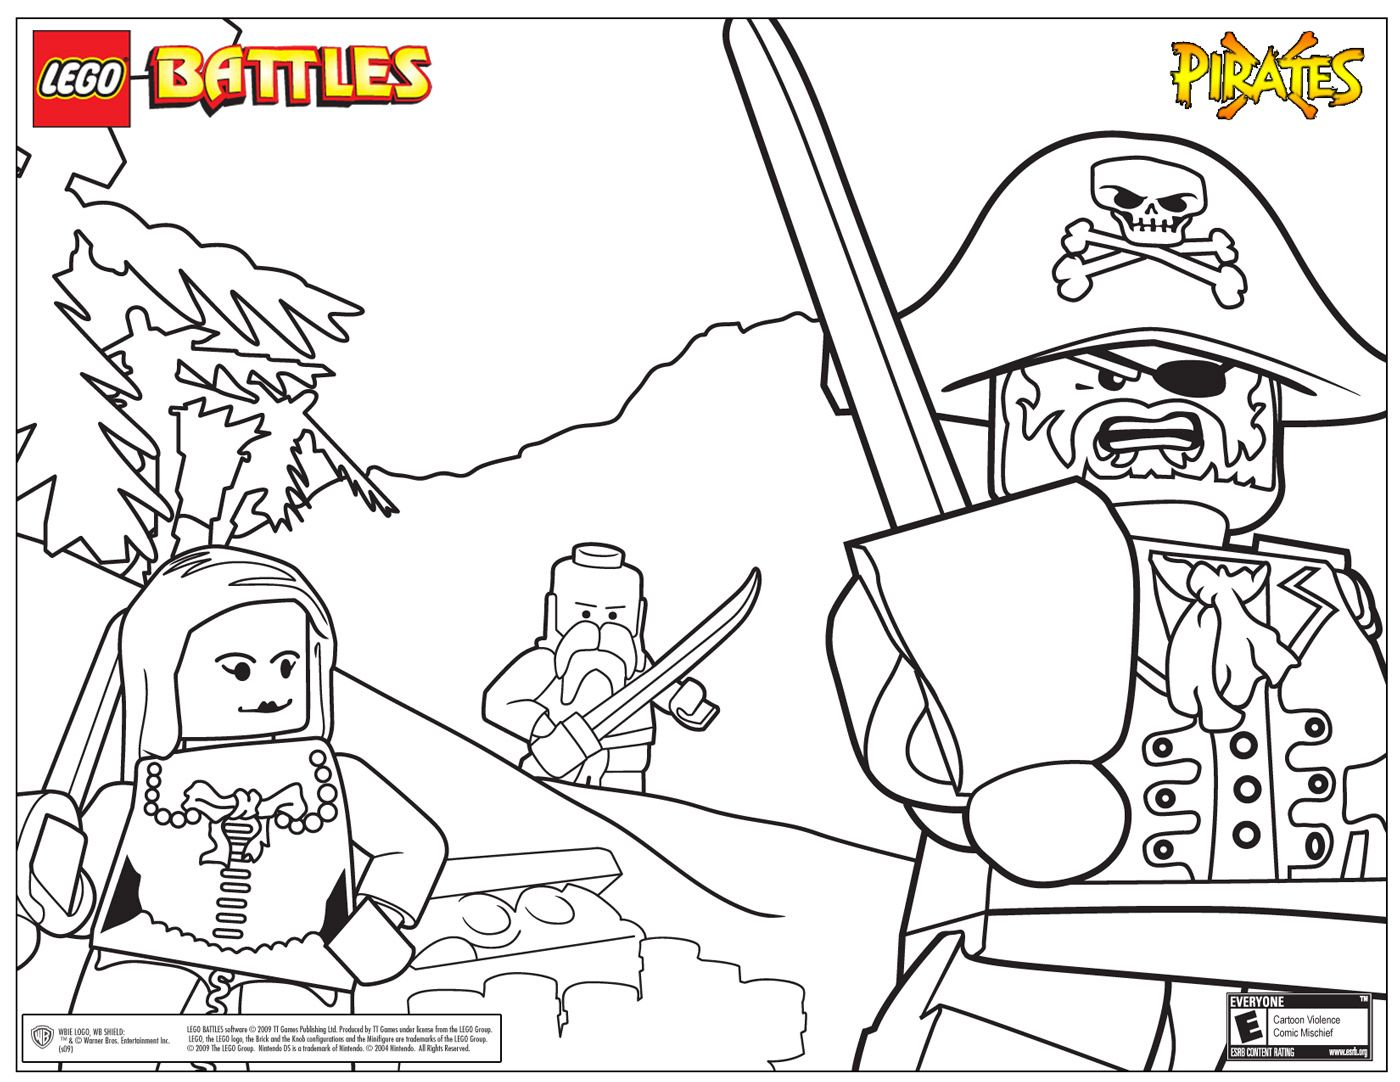 Arrrr Ye Going Ta Be Utilizing That There Crayon Sorry Couldnt Help Myself Lego Coloring Pages